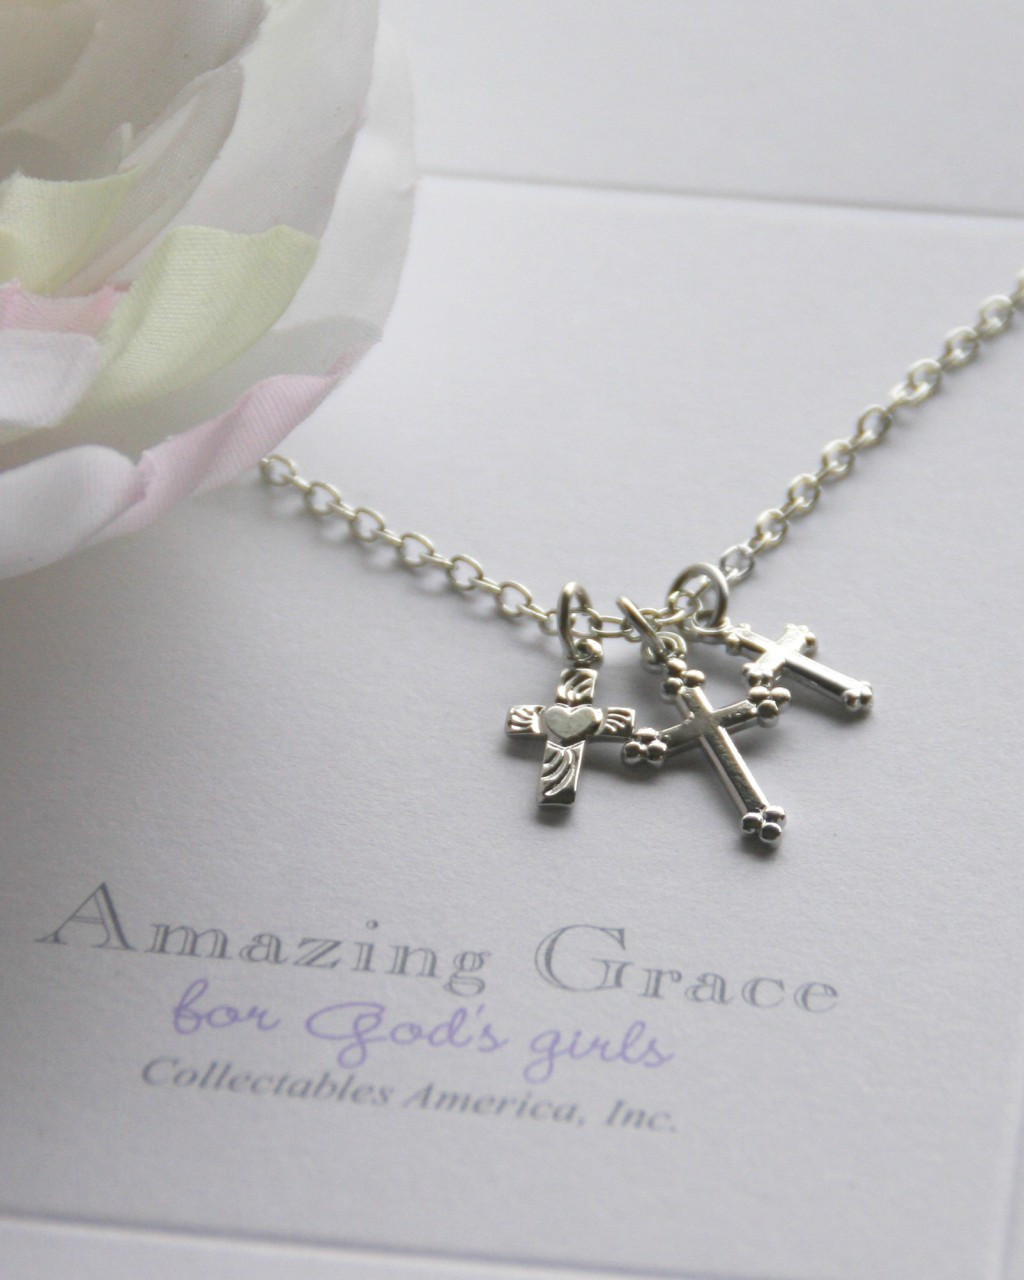 GG-27  Amazing Grace Three Small Crosses